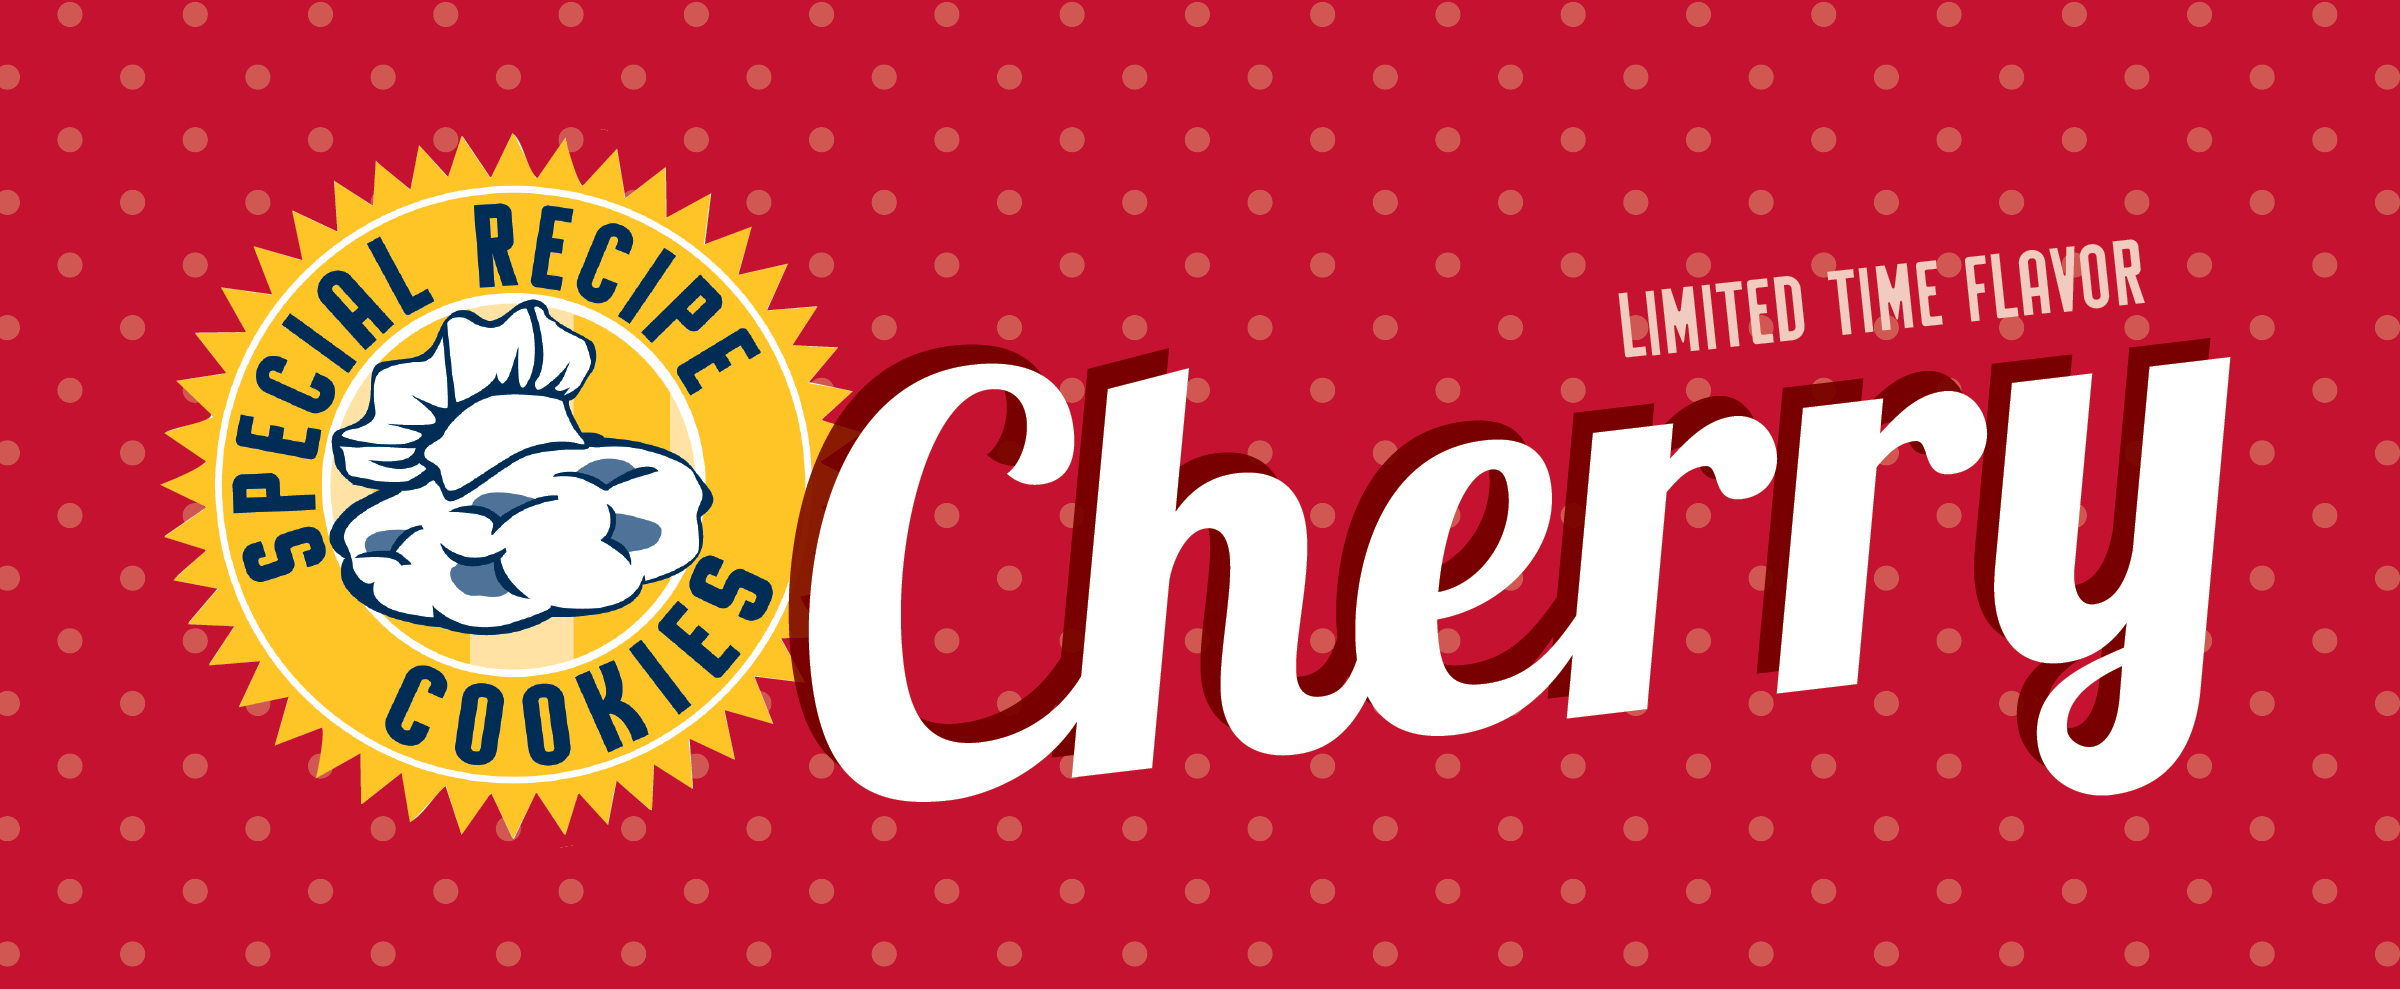 Special Recipe Cookies - Limited Time Flavor Cherry